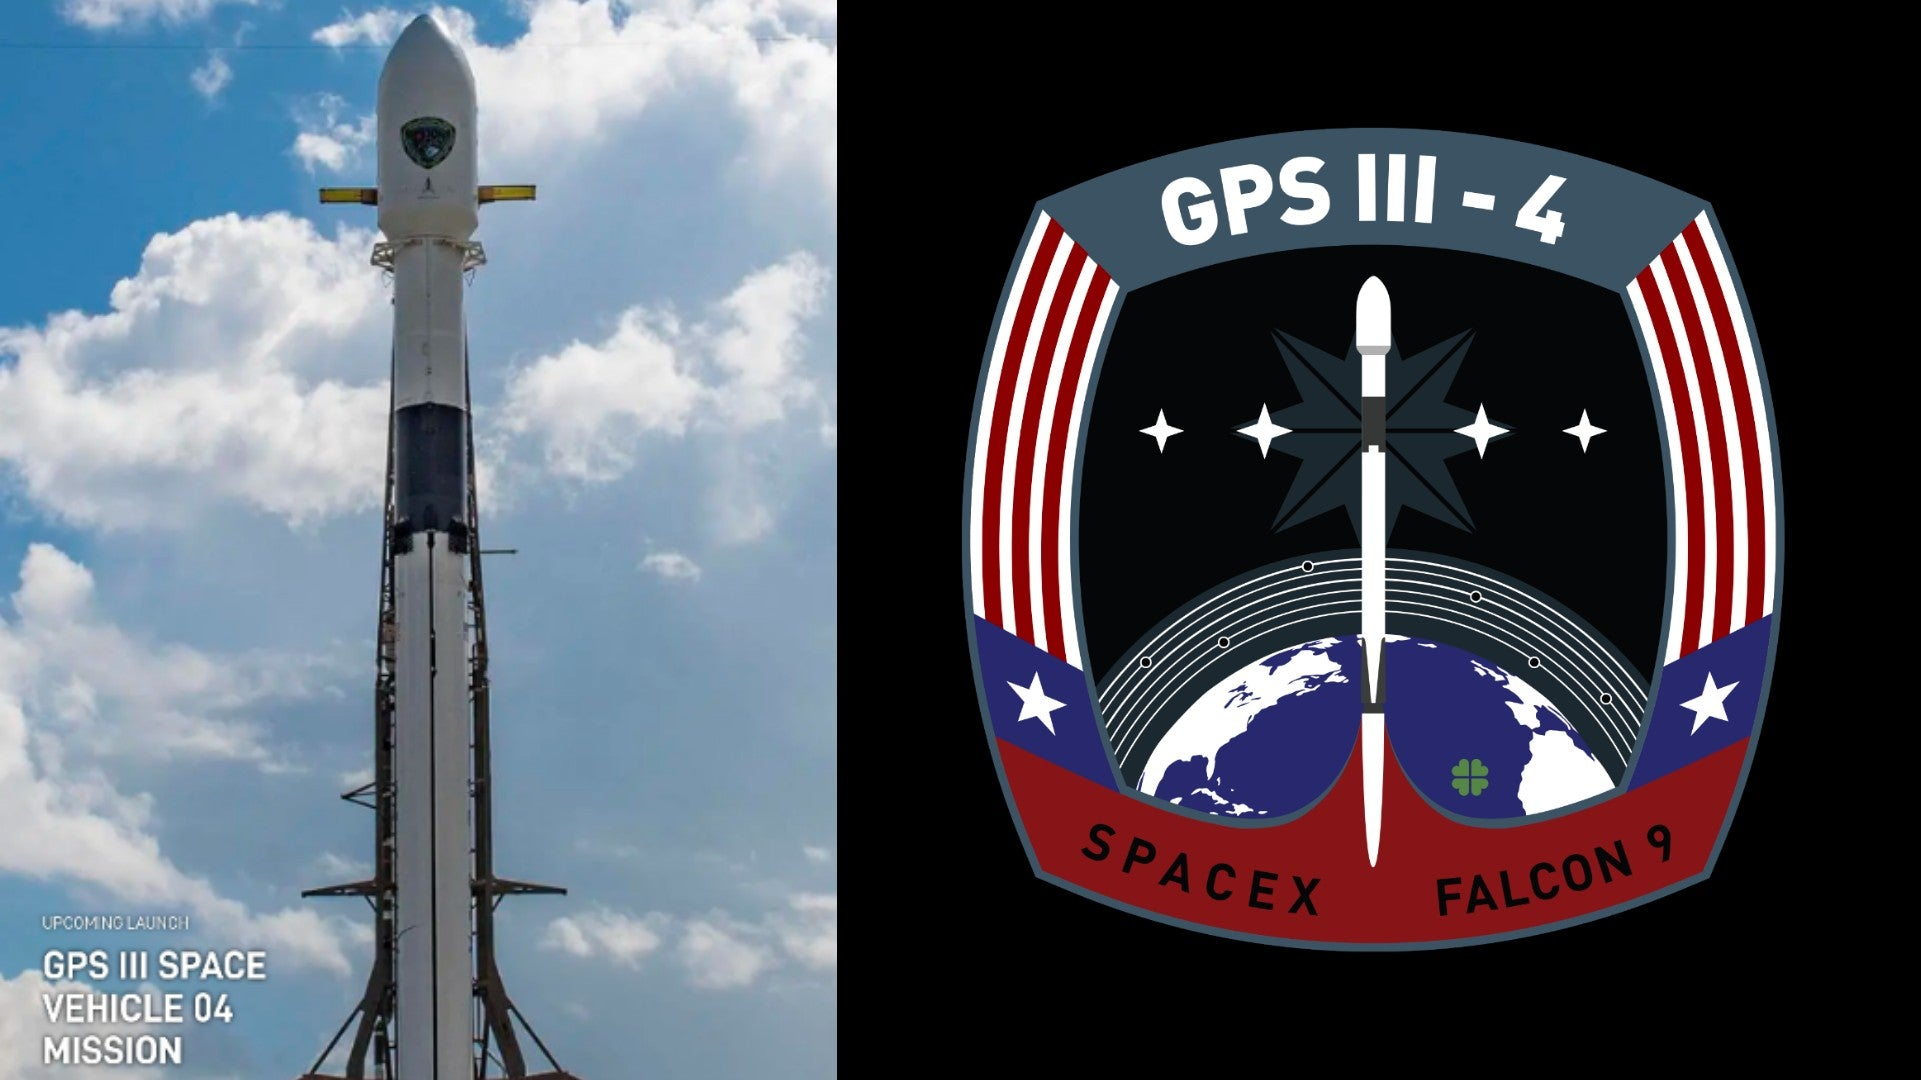 SpaceX completes Falcon 9 test ahead of U.S. Space Force GPS-III mission